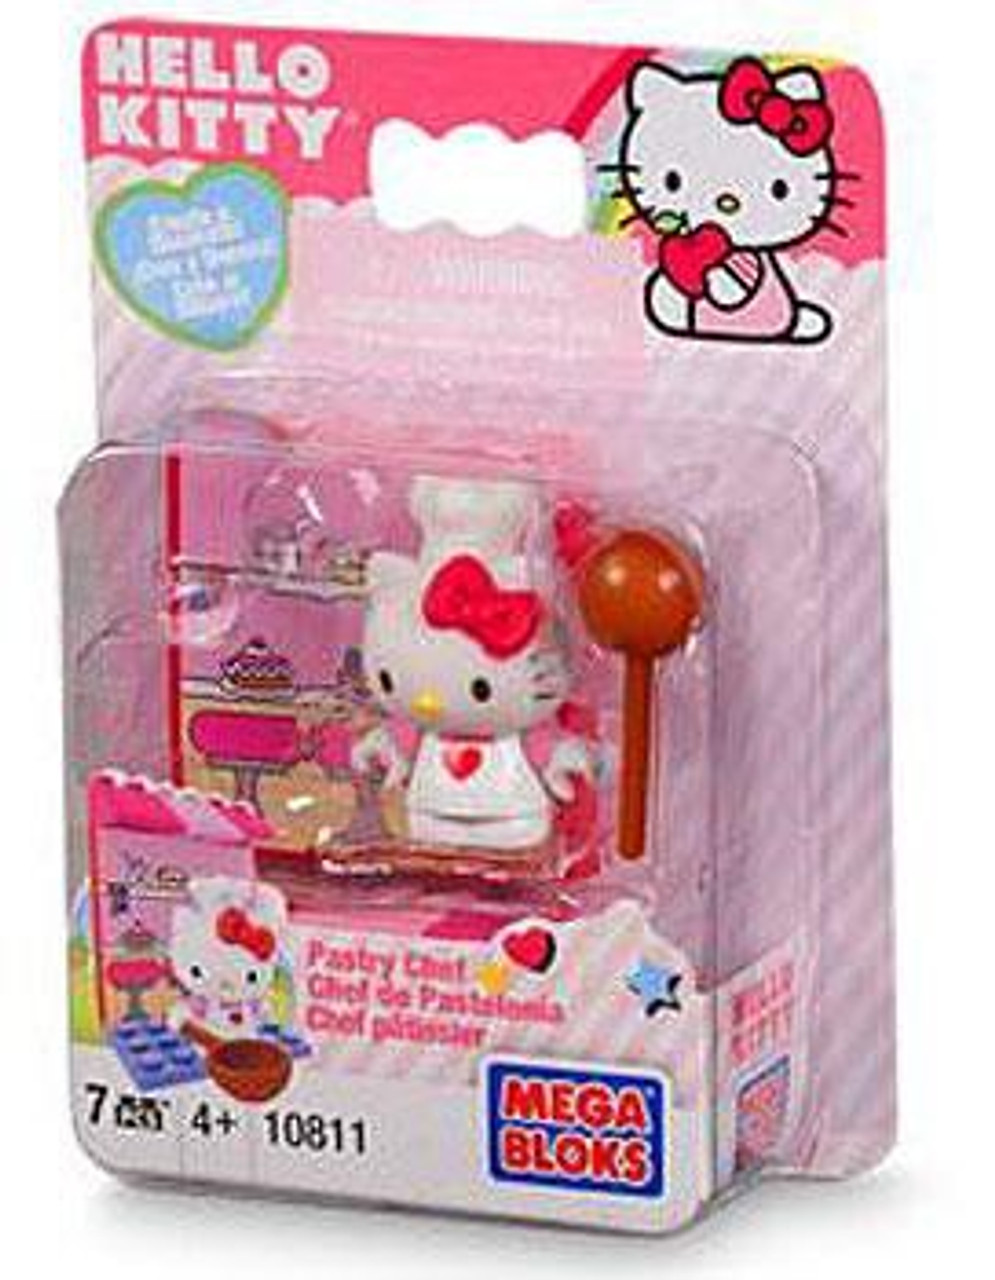 Mega Bloks Hello Kitty Create & Decorate Pastry Chef Set #10811